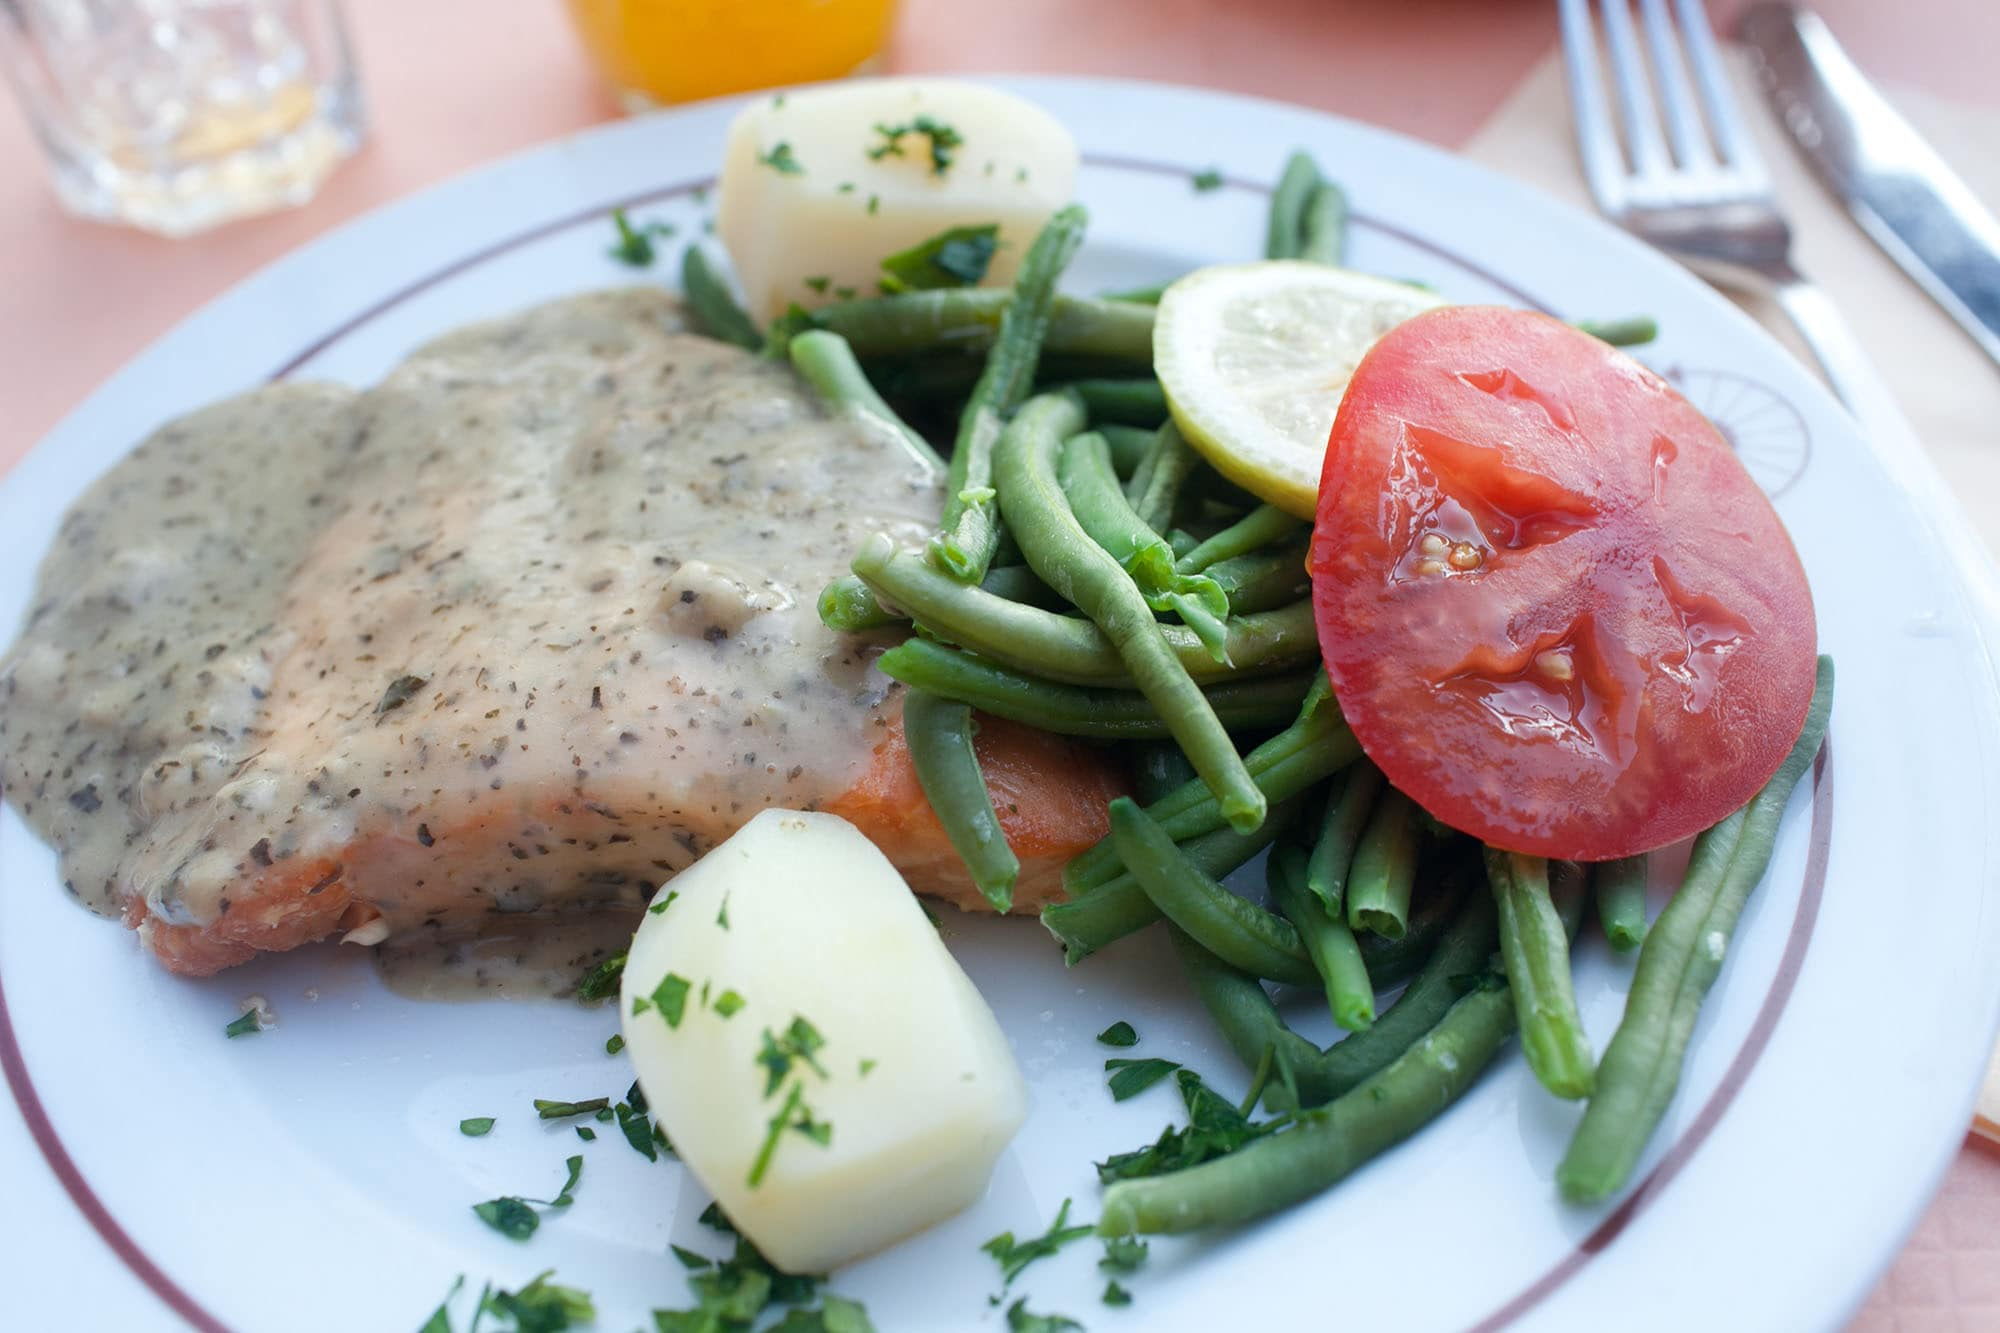 Salmon with basil sauce in Paris